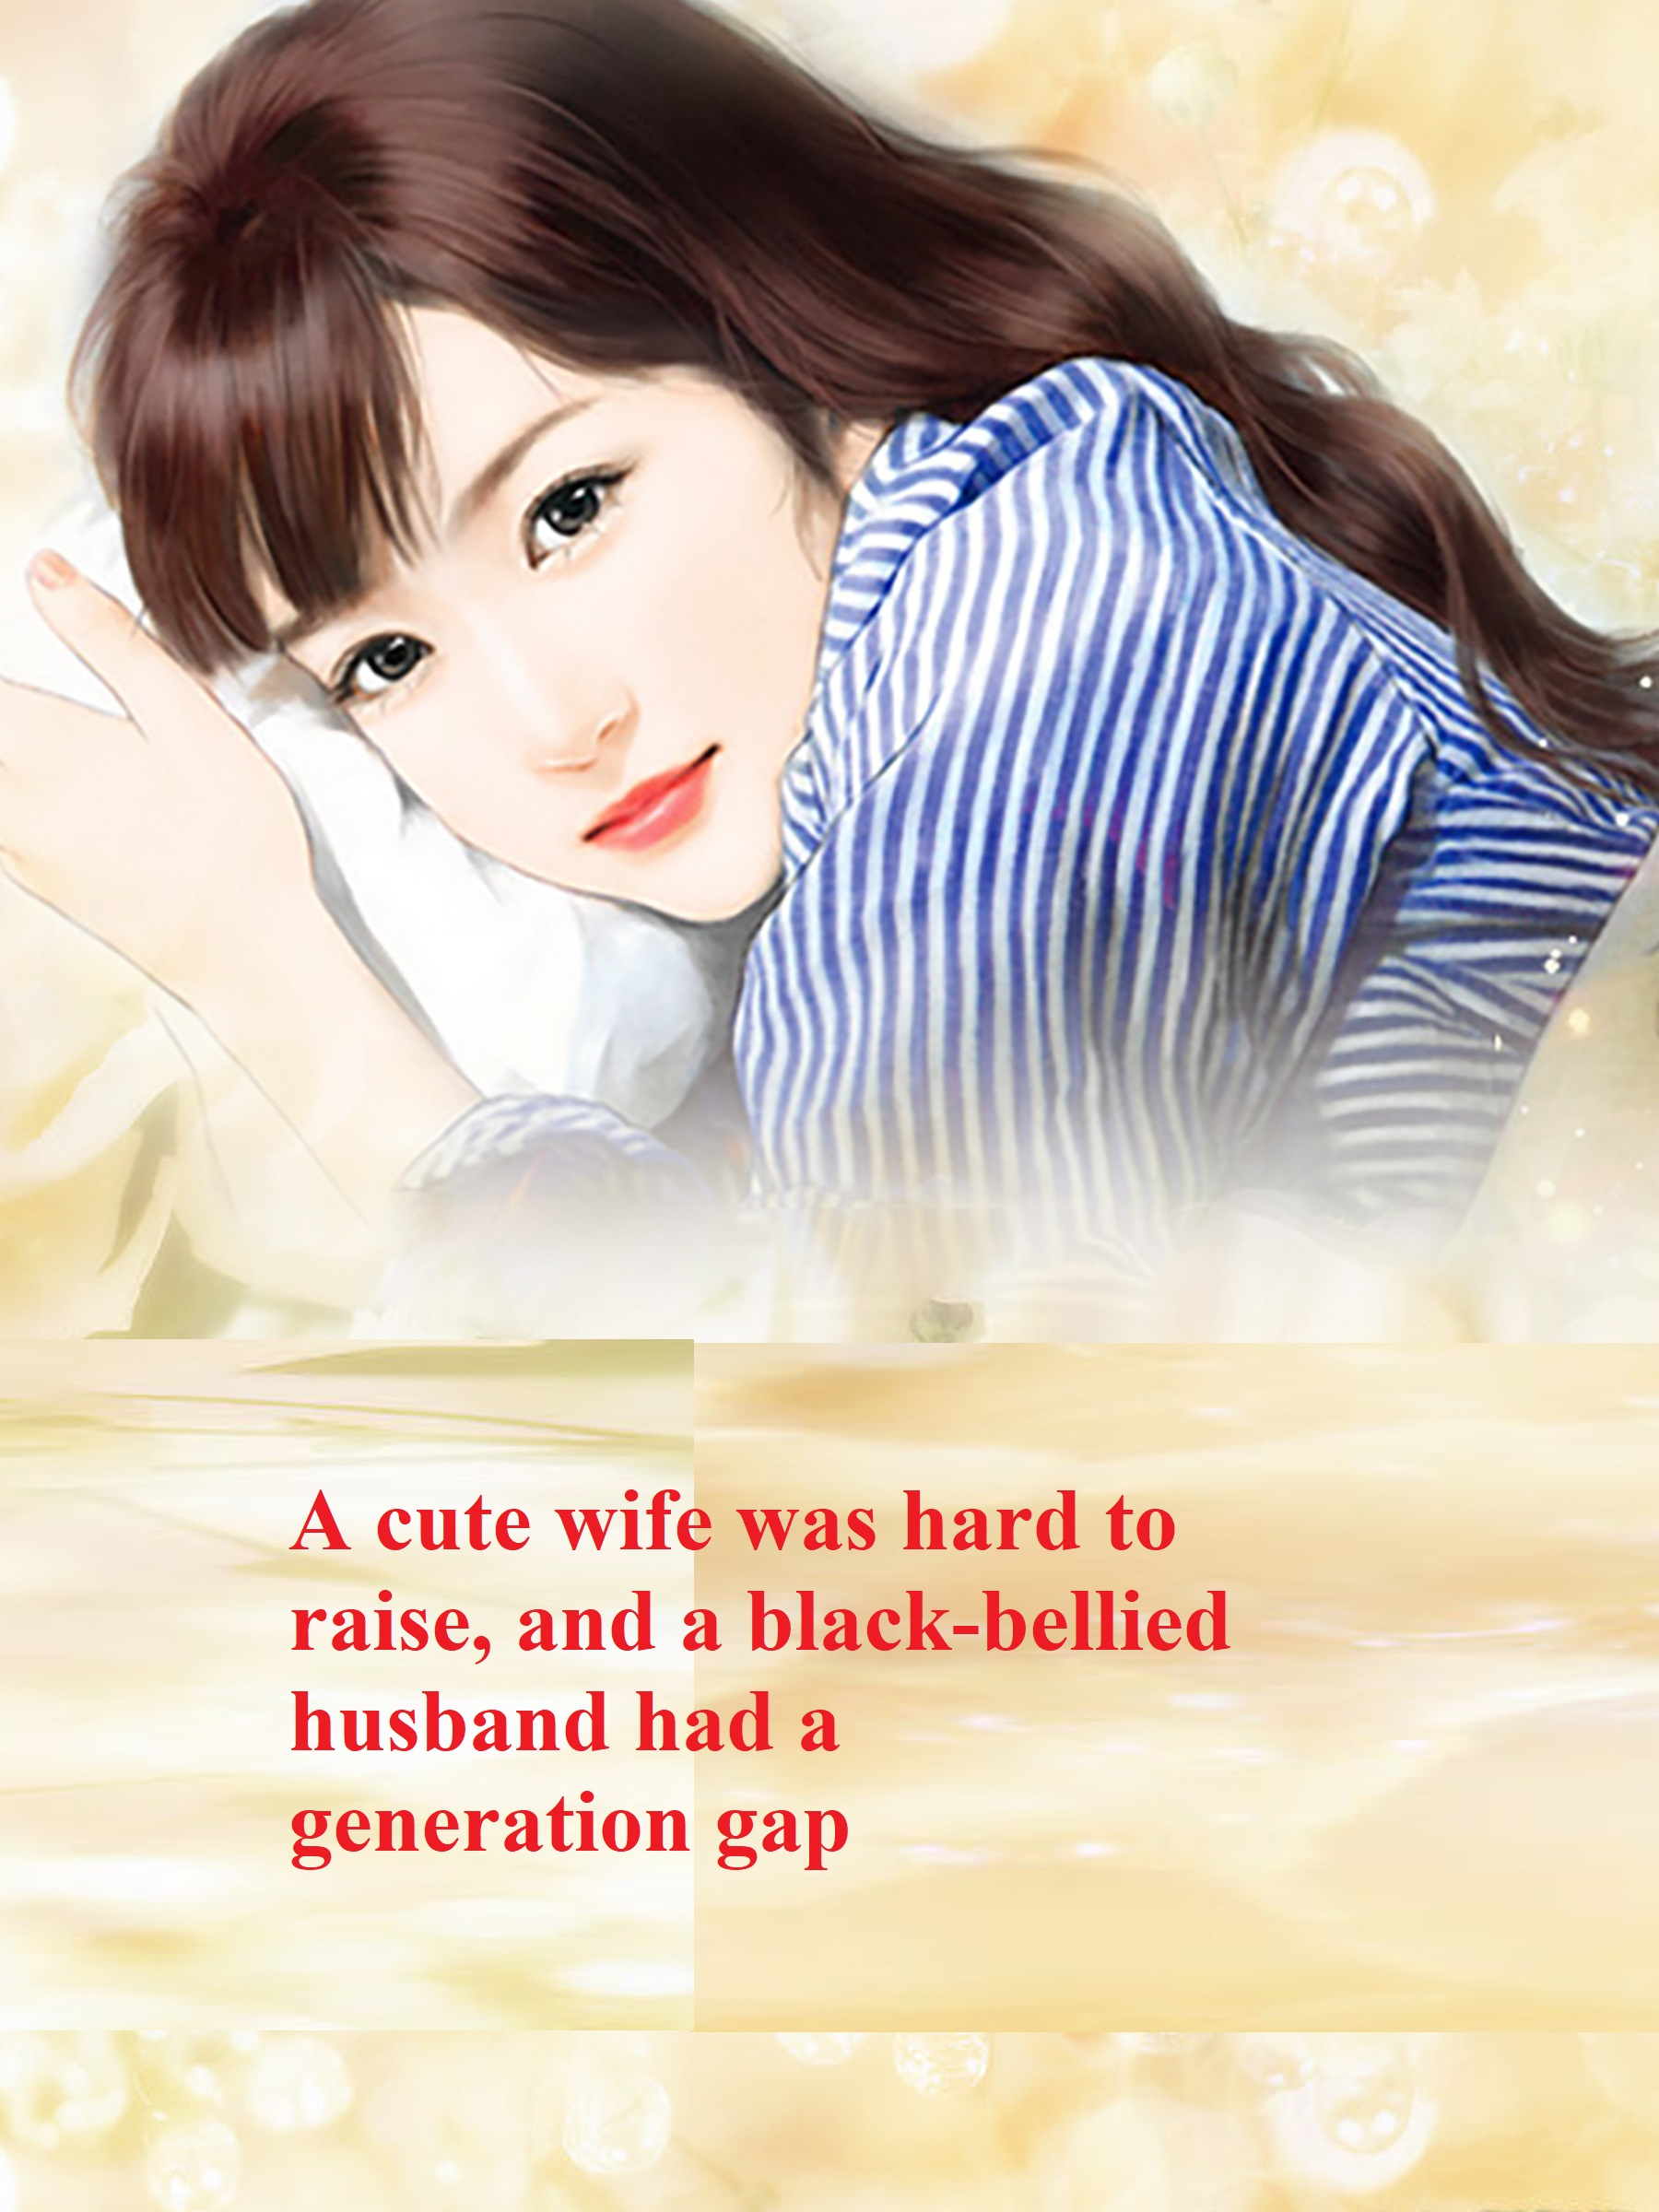 A cute wife was hard to raise, and a black-bellied husband had a generation gap Novel Chapter 6 To 10 PDF